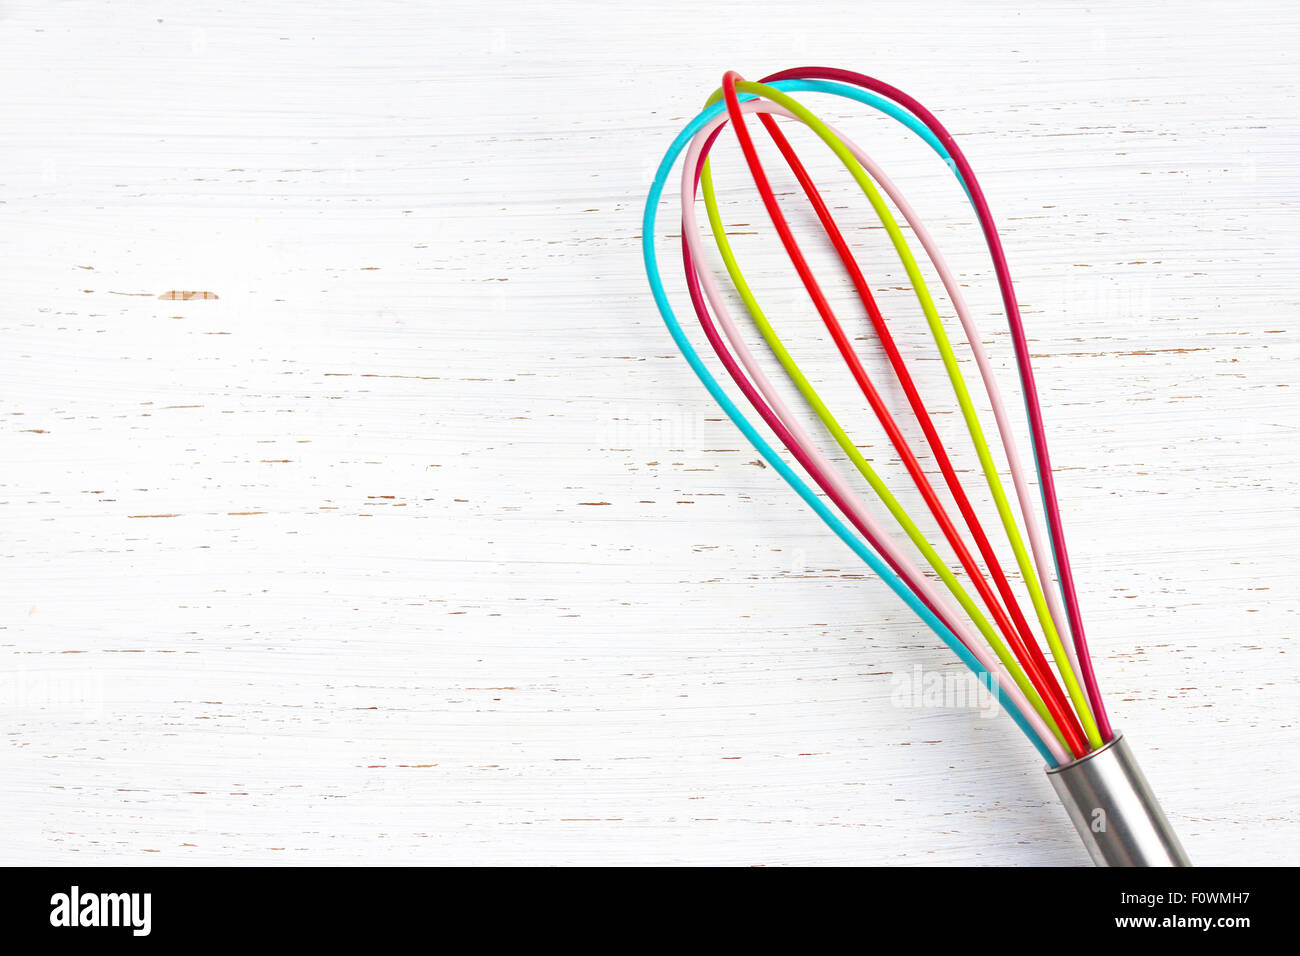 colorful whisk on white distressed wood chopping board. Kitchen/baking background. - Stock Image